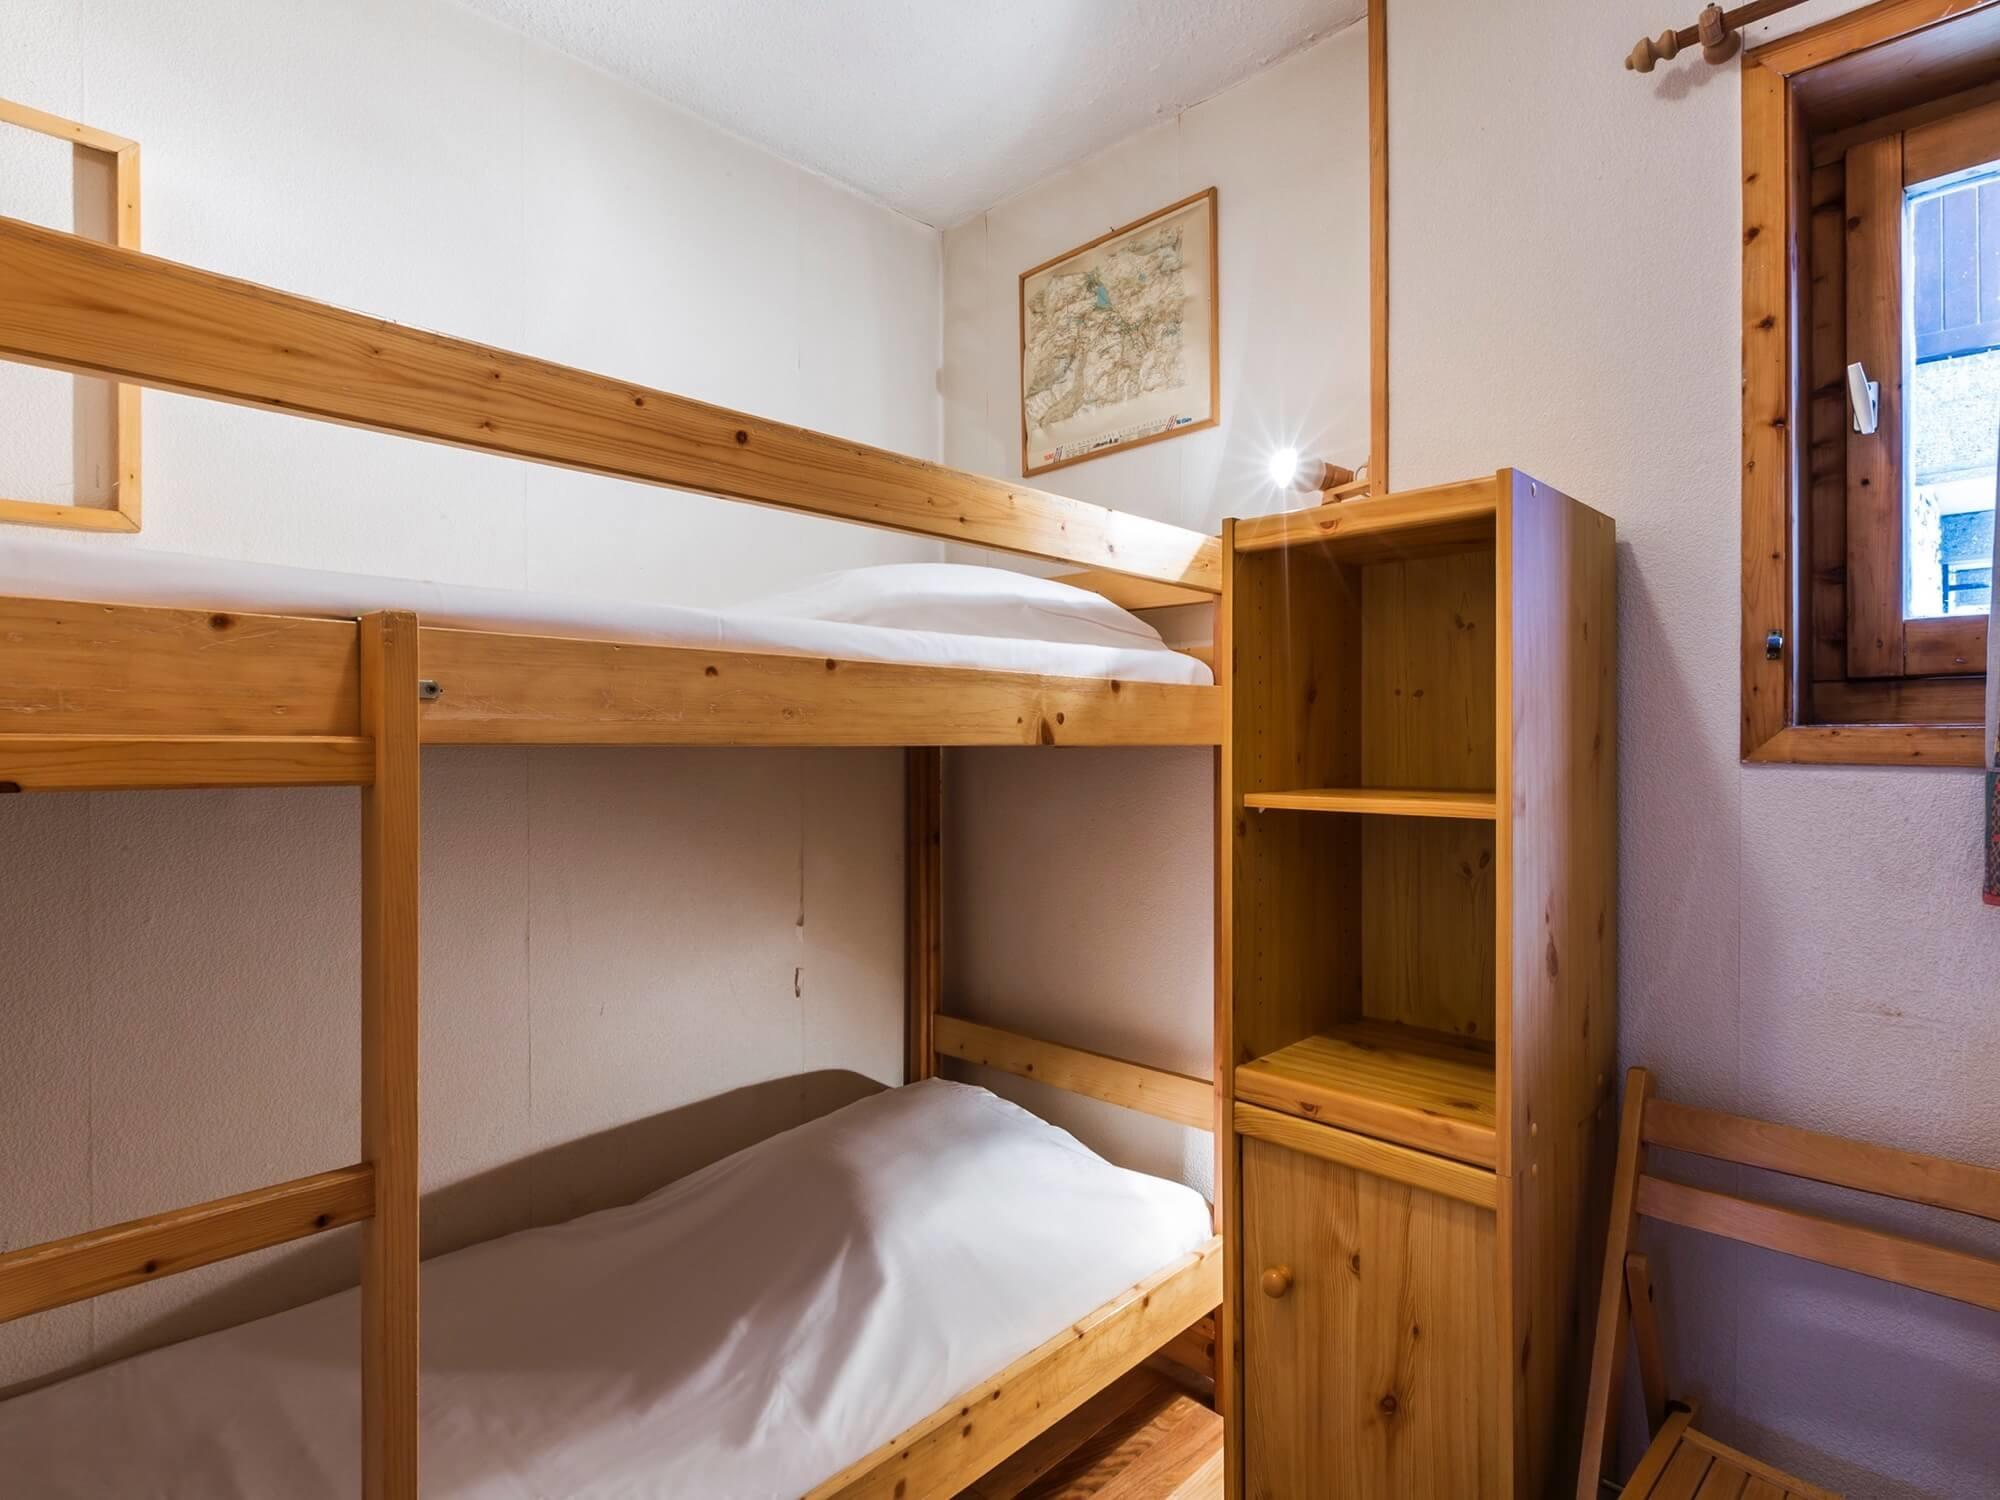 Saturn Bunk Bed Val D Isere Village Saturn For 6 C Self Catered Apartment Chalet